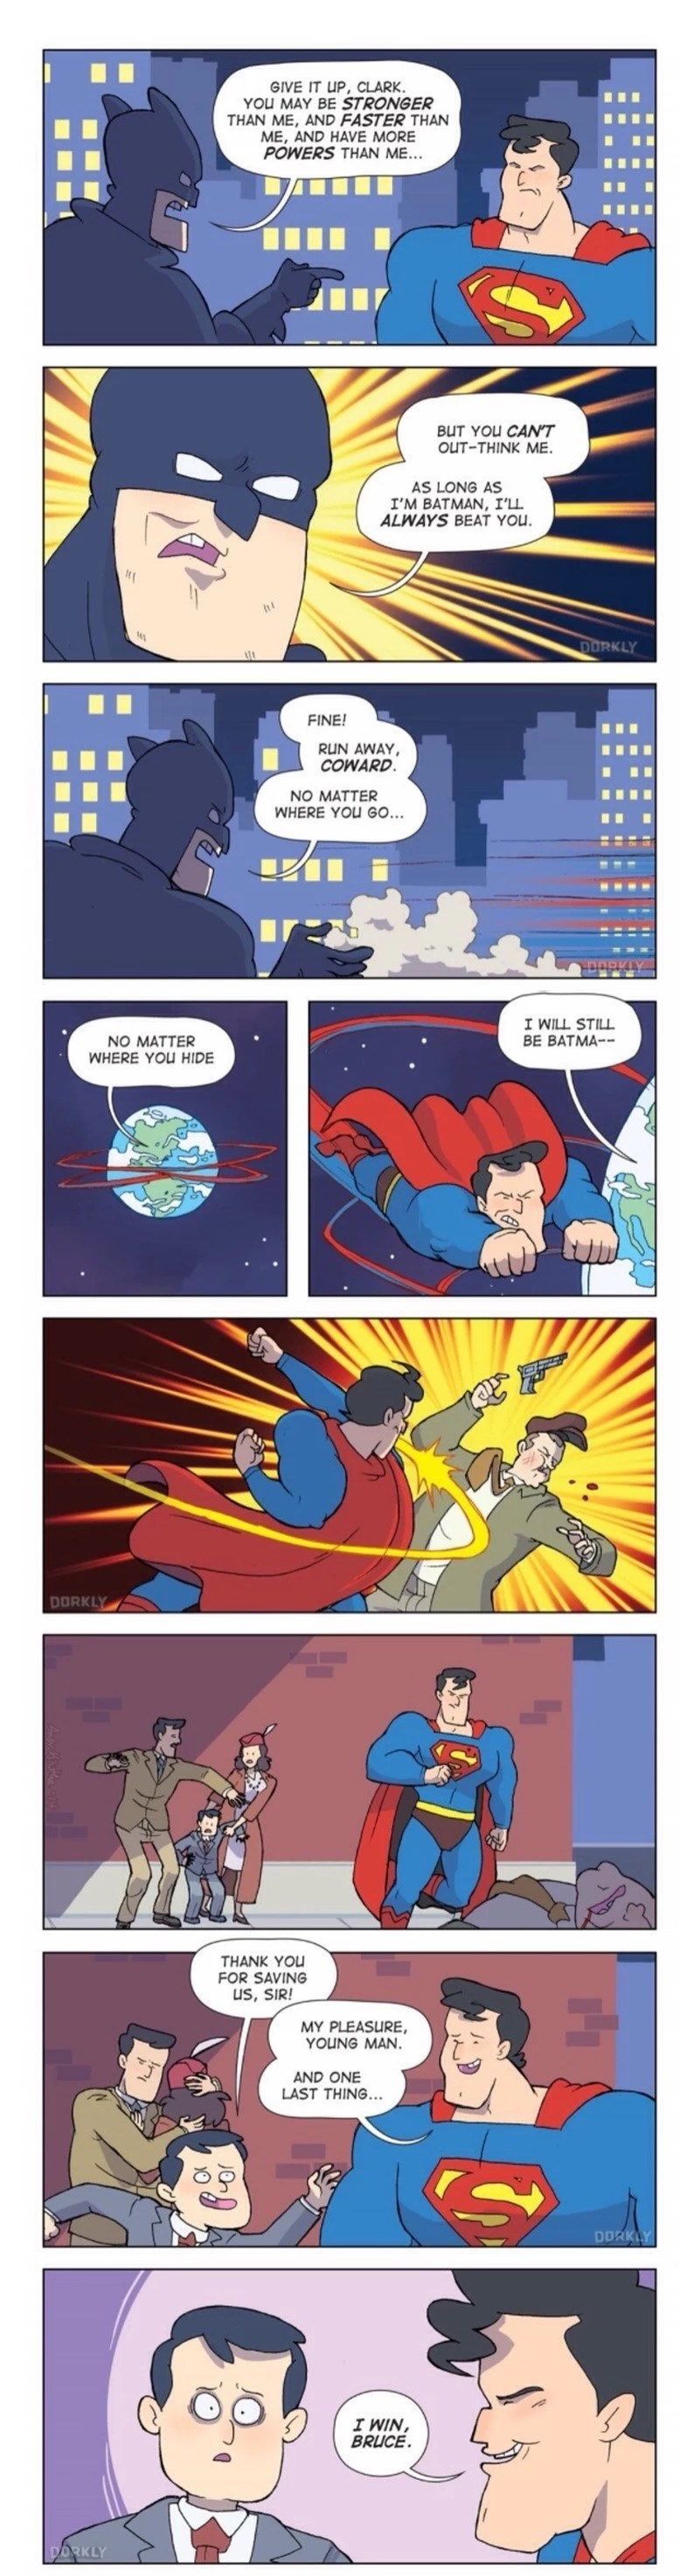 funny-batman-superman-past-comics